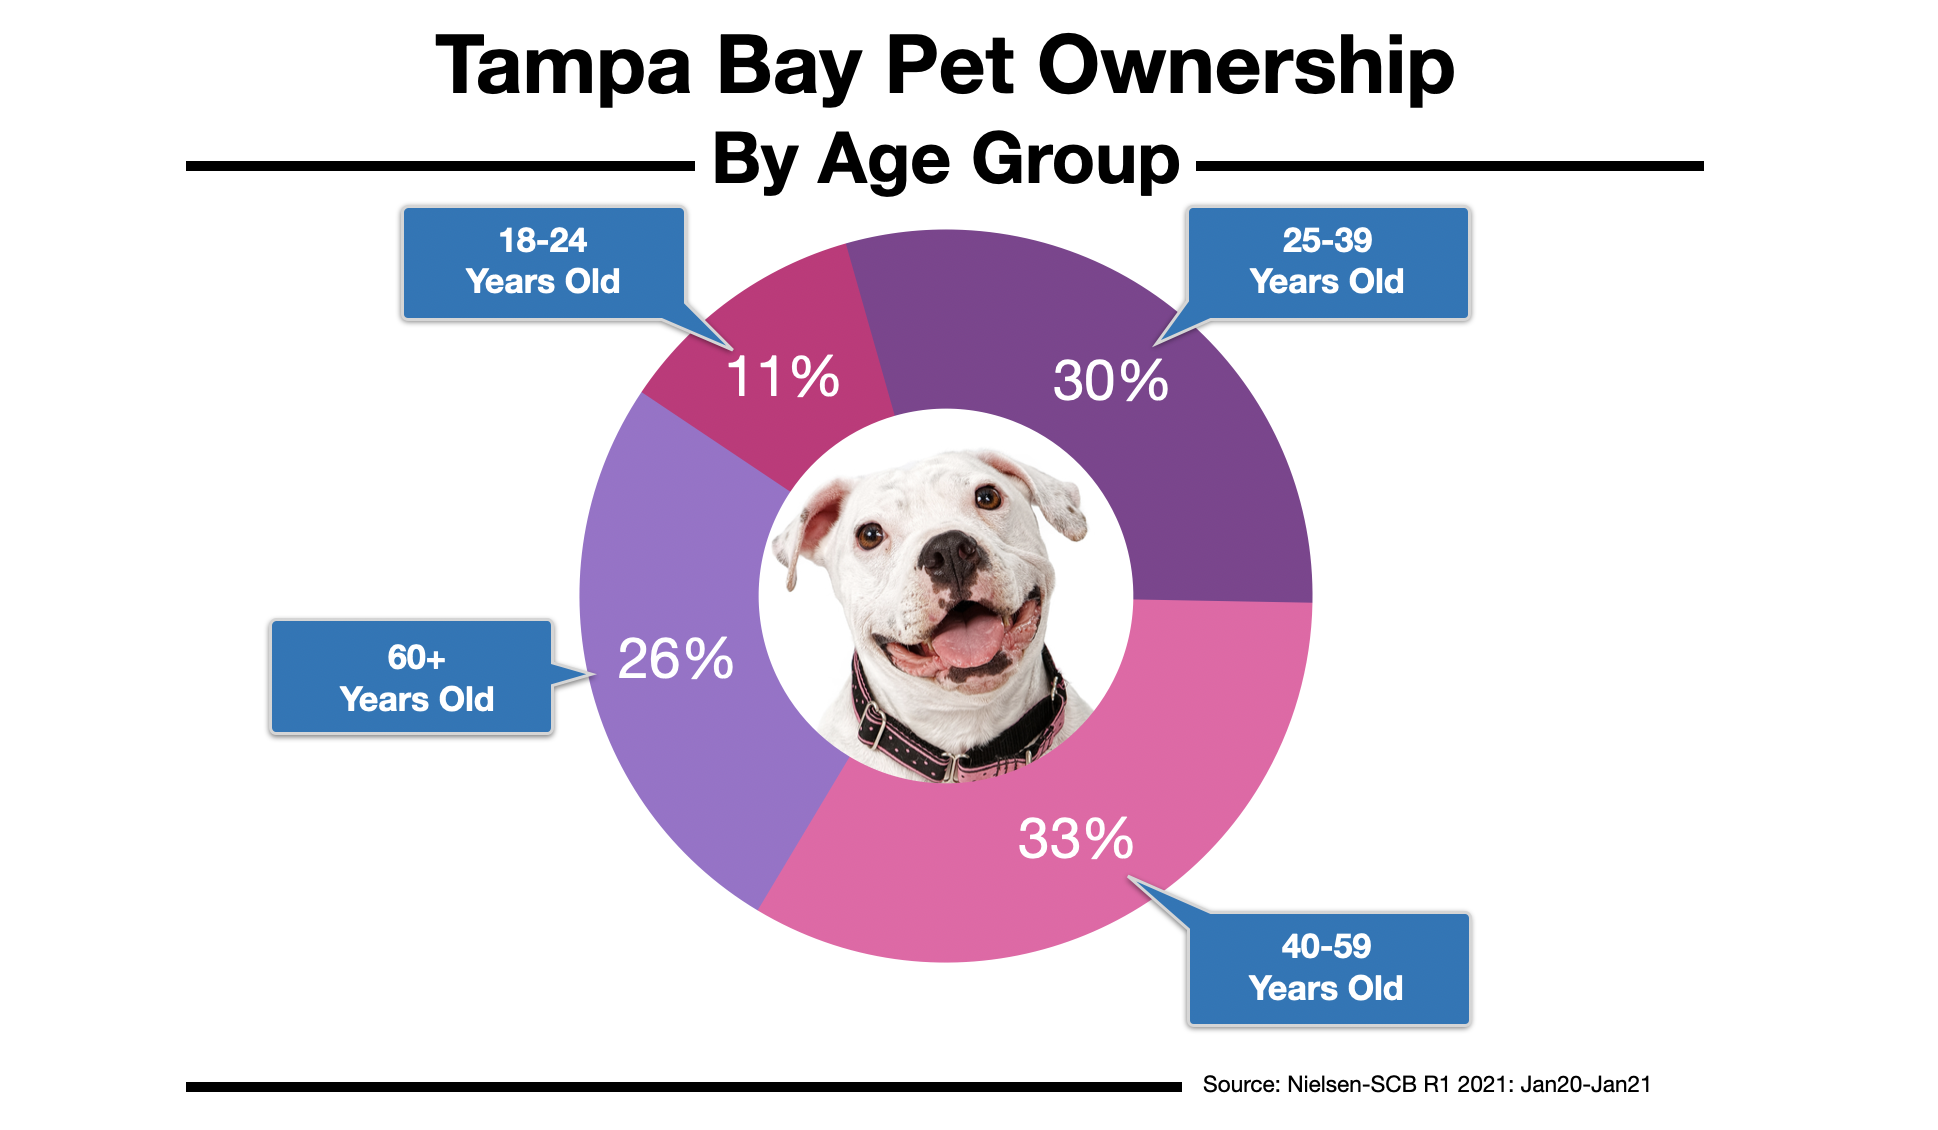 Advertising To Pet Owners In Tampa Bay